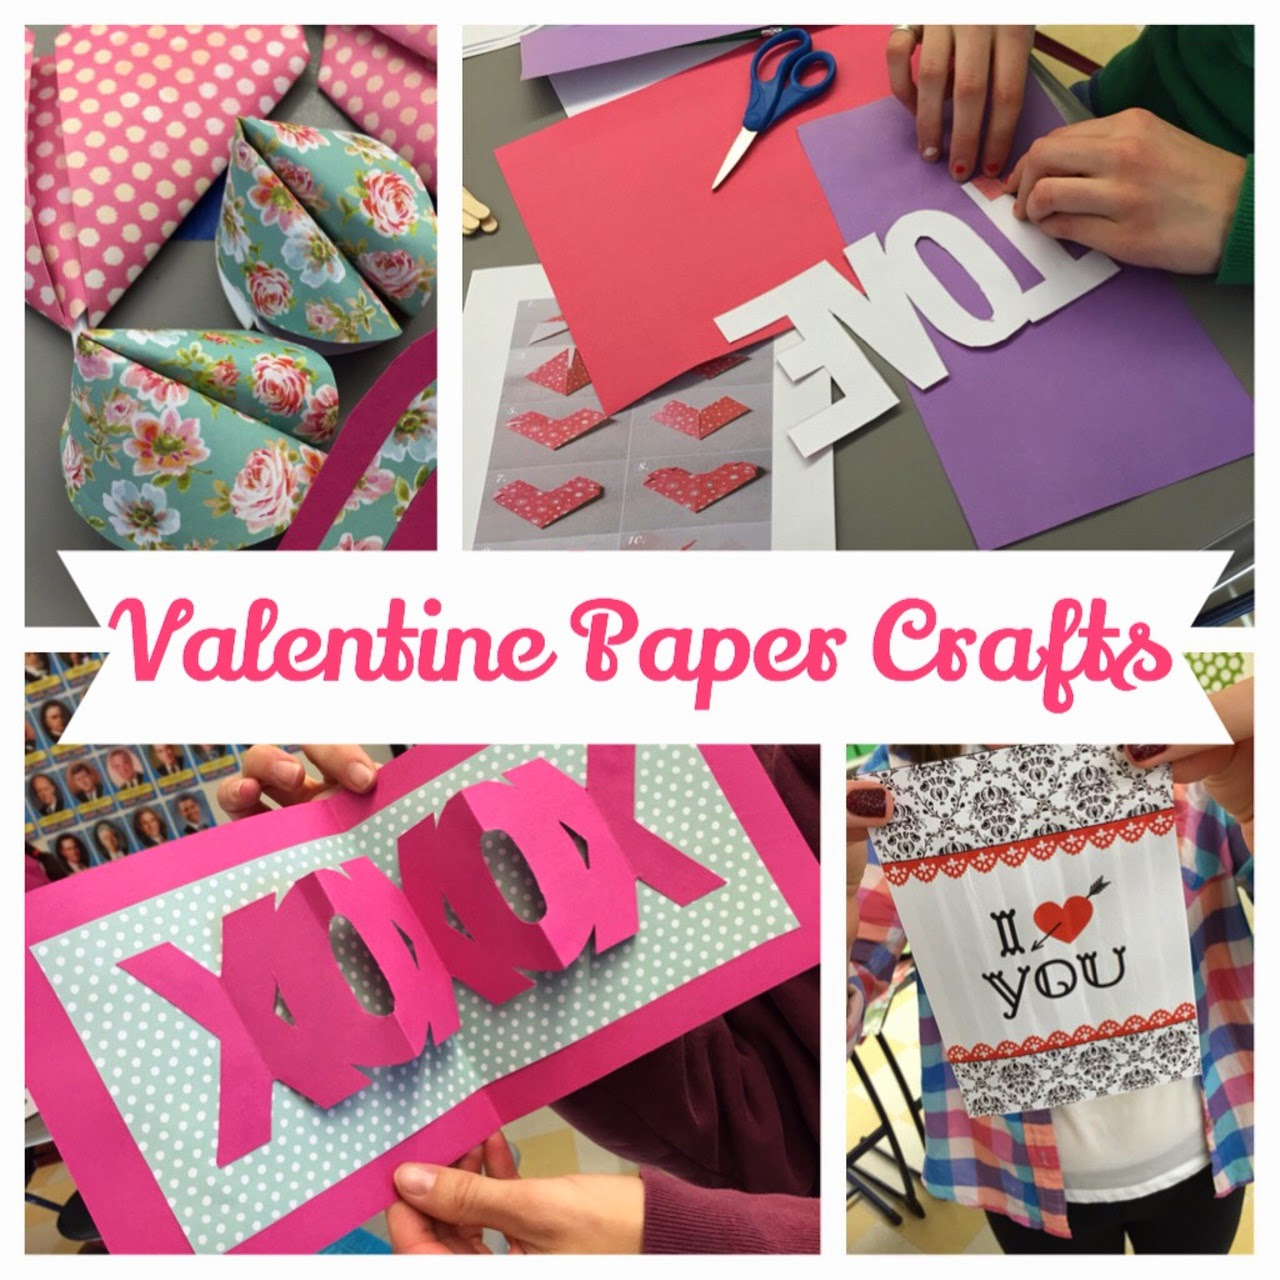 Crafty Teacher Lady February 2013: Crafty Teacher Lady: Craft Club: Valentine Paper Crafts